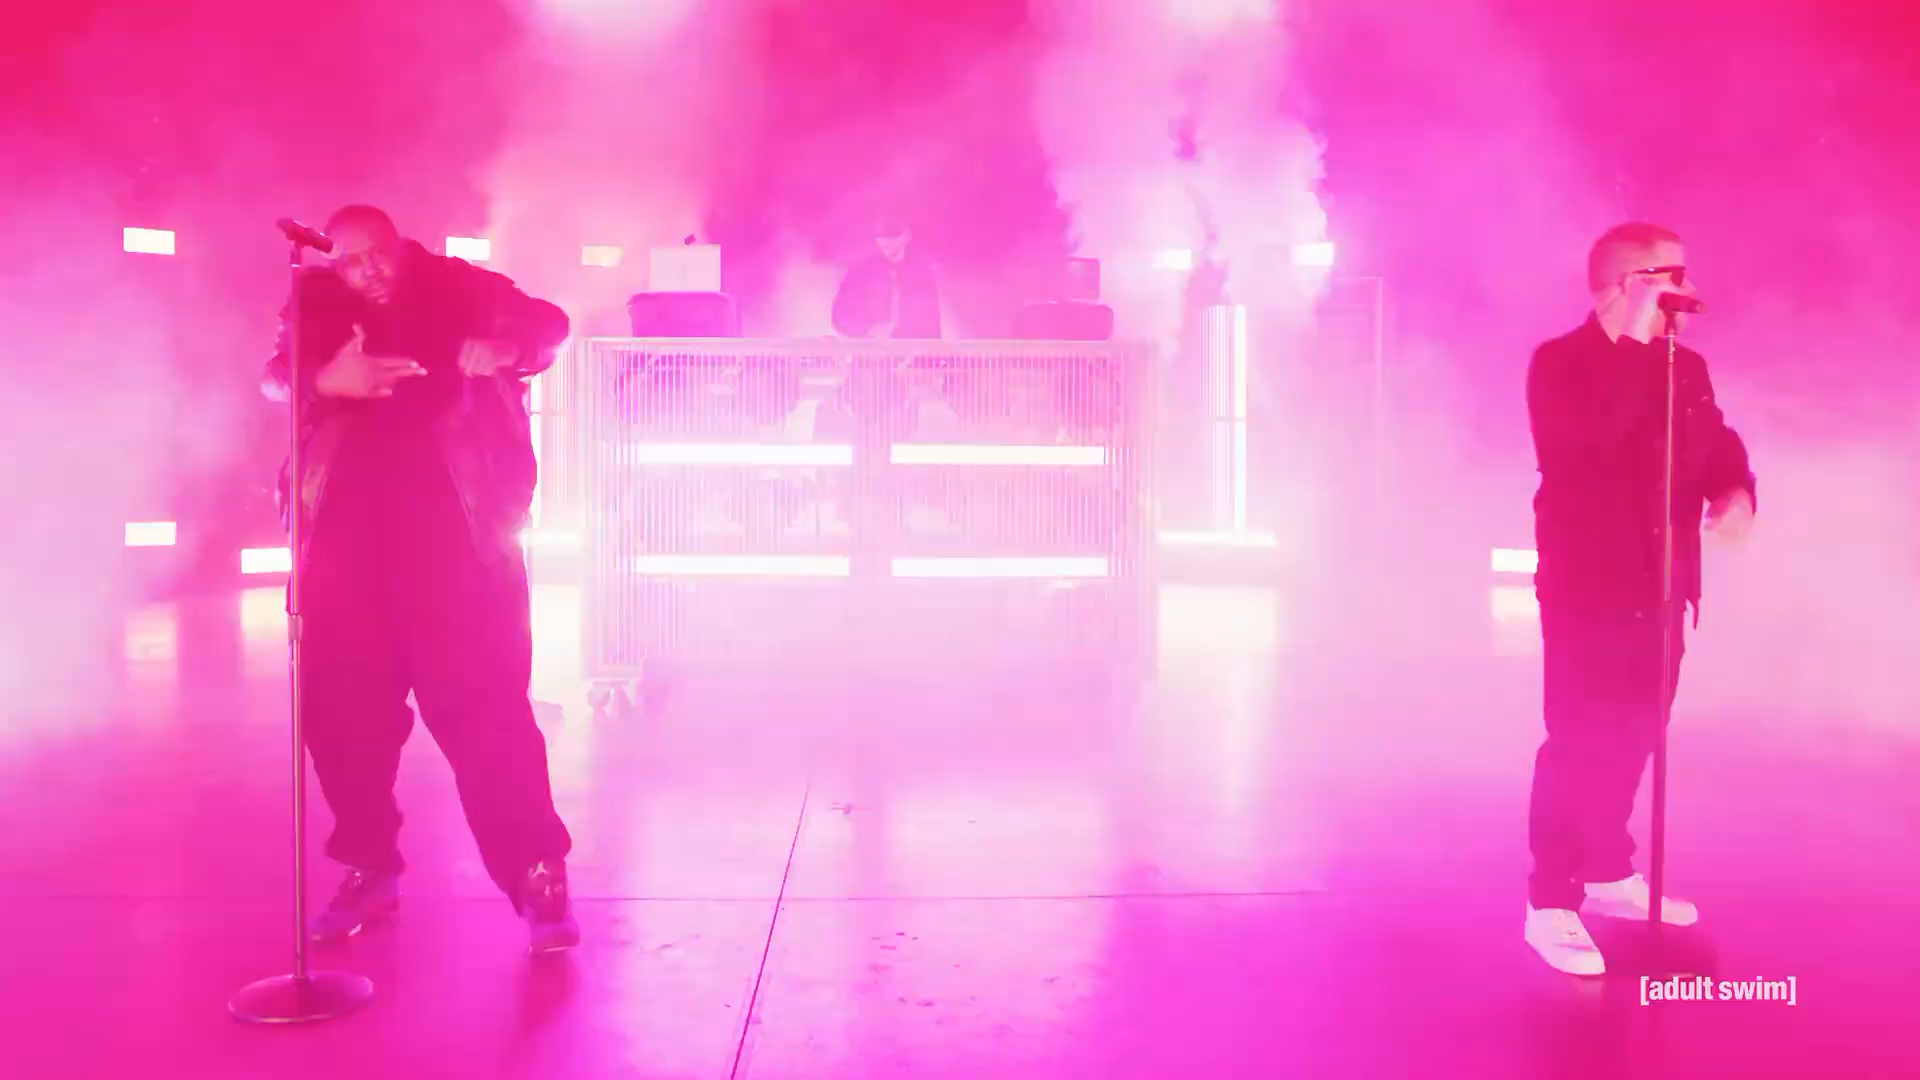 Run the Jewels performing with a predominantly pink background.